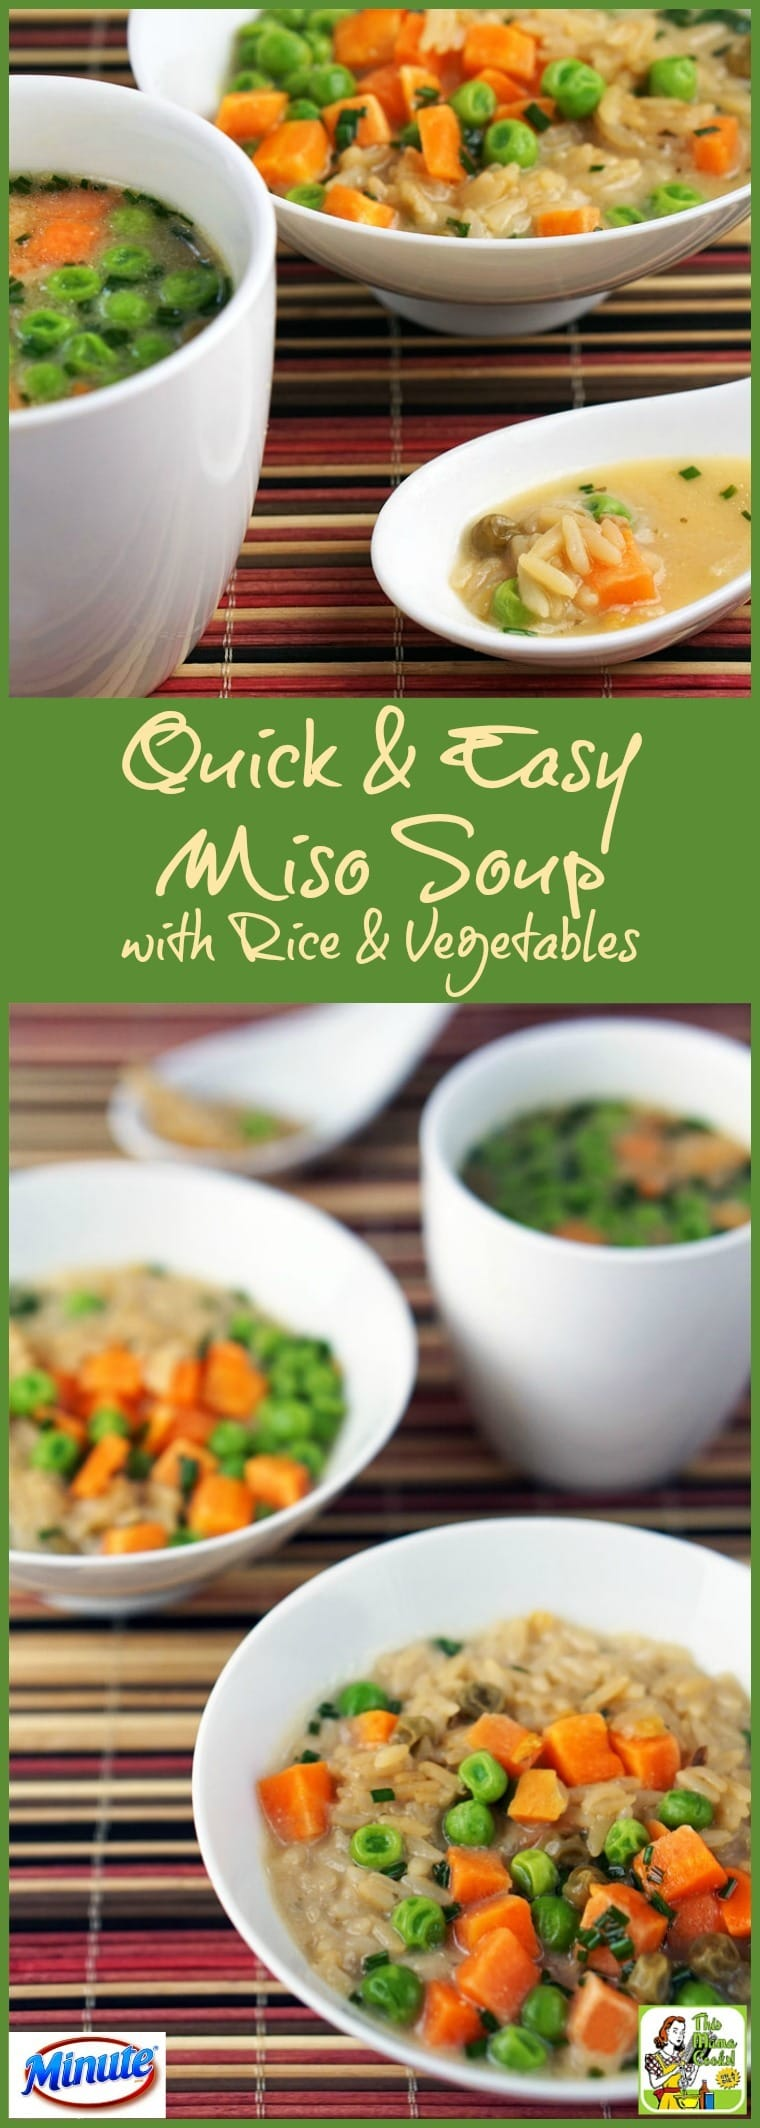 make, this Quick & Easy Miso Soup recipe made with rice and vegetables ...